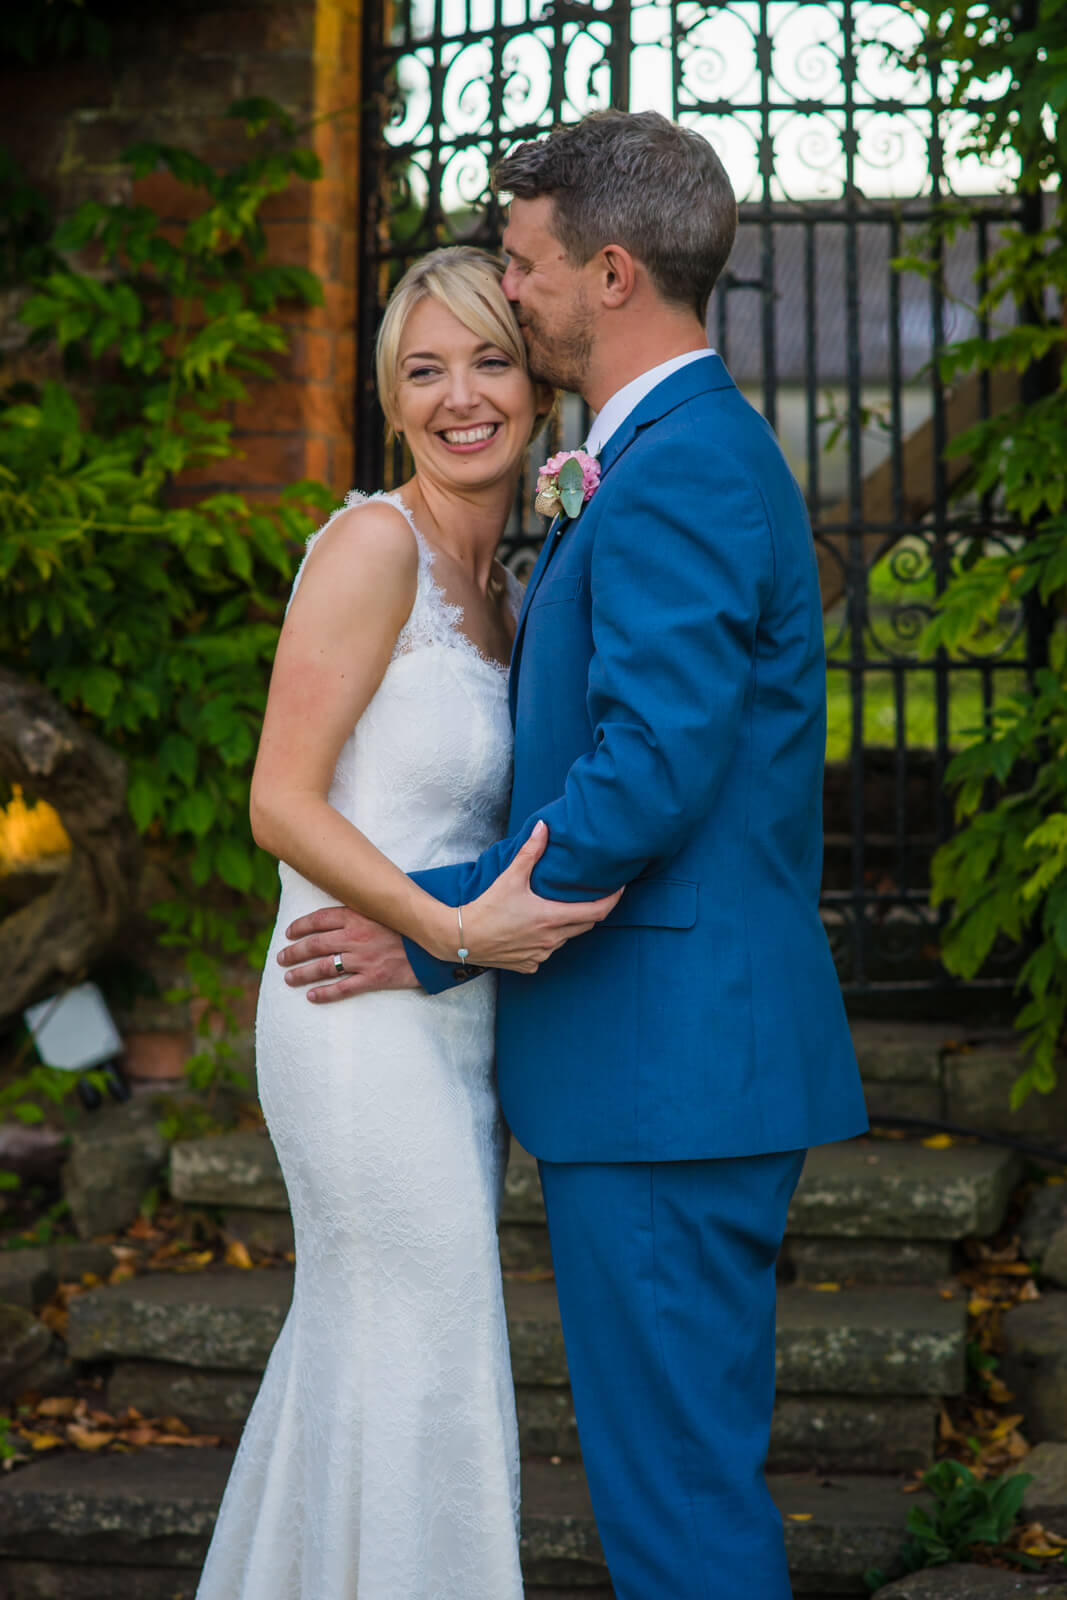 Groom kisses bride on the head infront of wrought iron gates